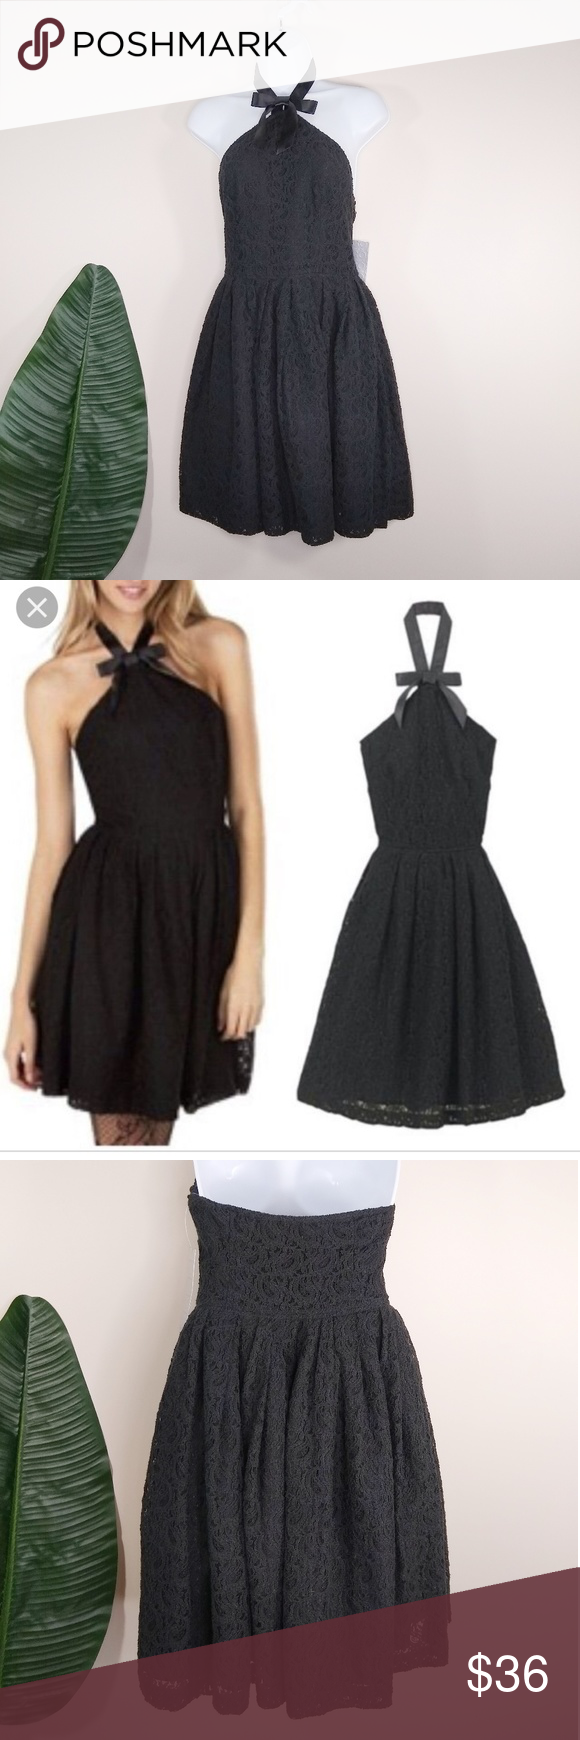 Ronarte Choker Tie Lace Semi Formal Dress Rodarte For Target Collections Semi Formal All Over Lace Stunner With A Old Hollywo Lace Dress Dresses Target Dresses